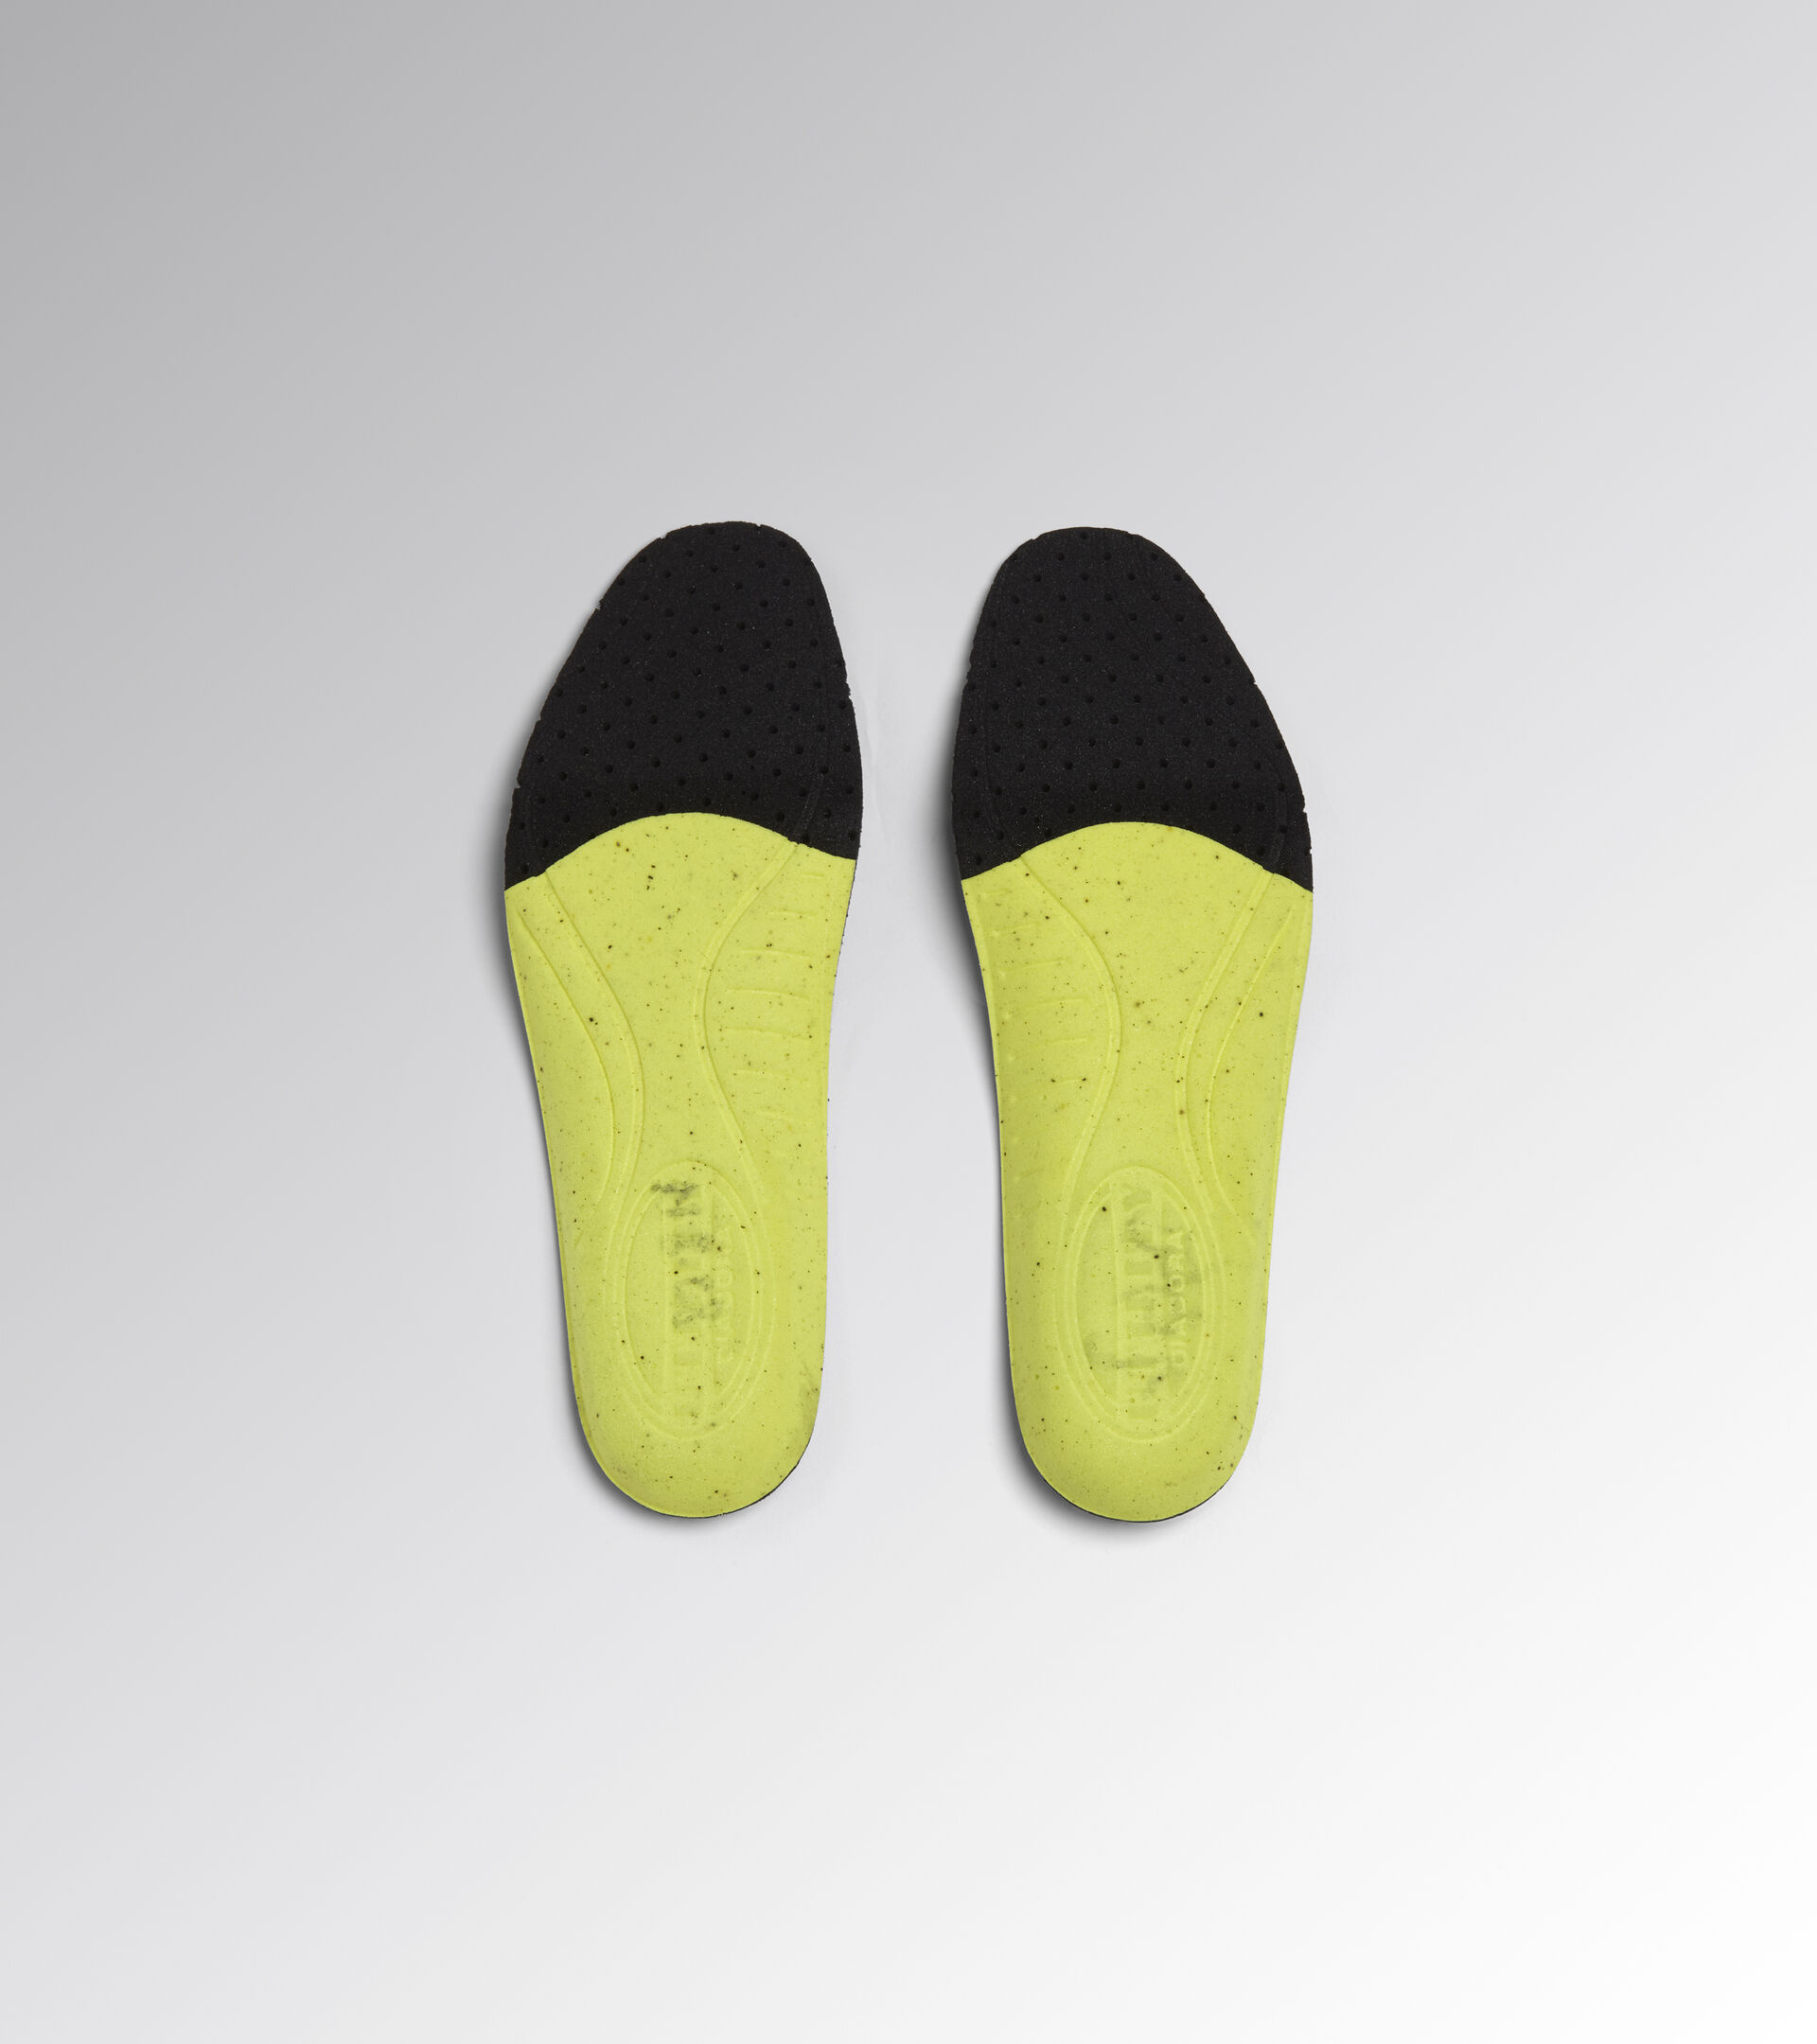 Insoles for Utility shoes INSOLE PLUS BLACK /YELLOW CROMS - Utility